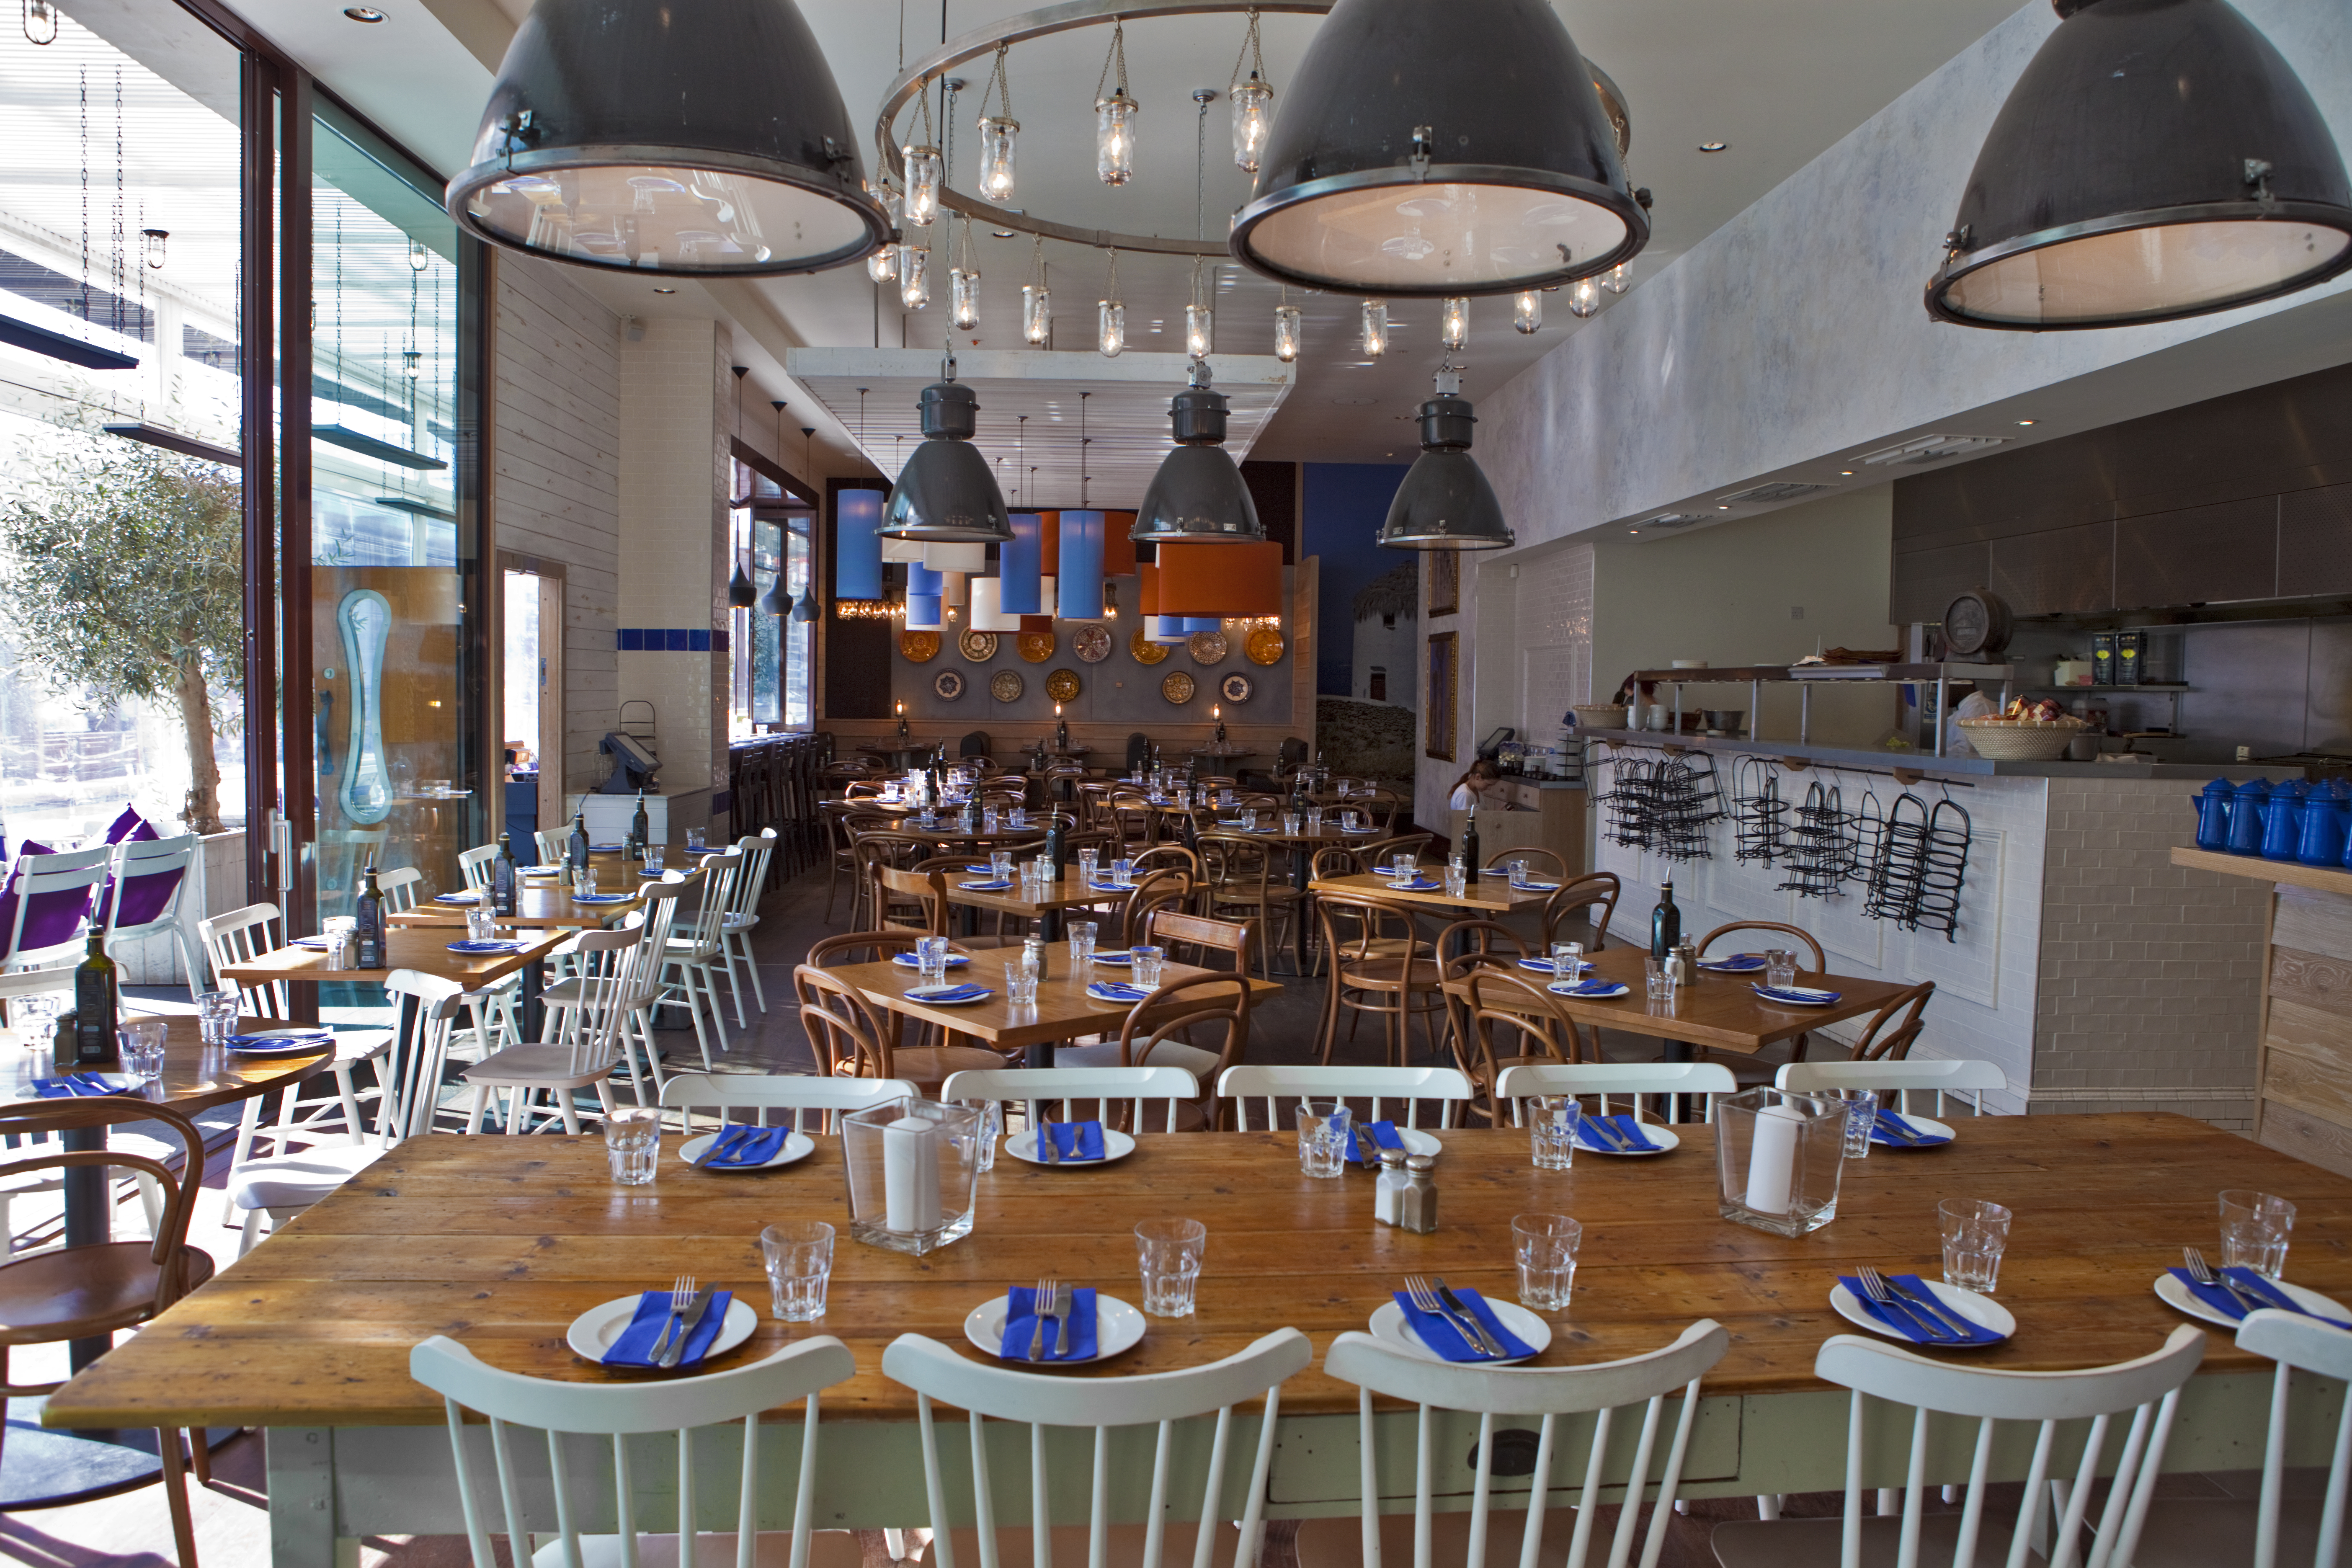 Reserve a table at The Real Greek - Westfield Stratford City